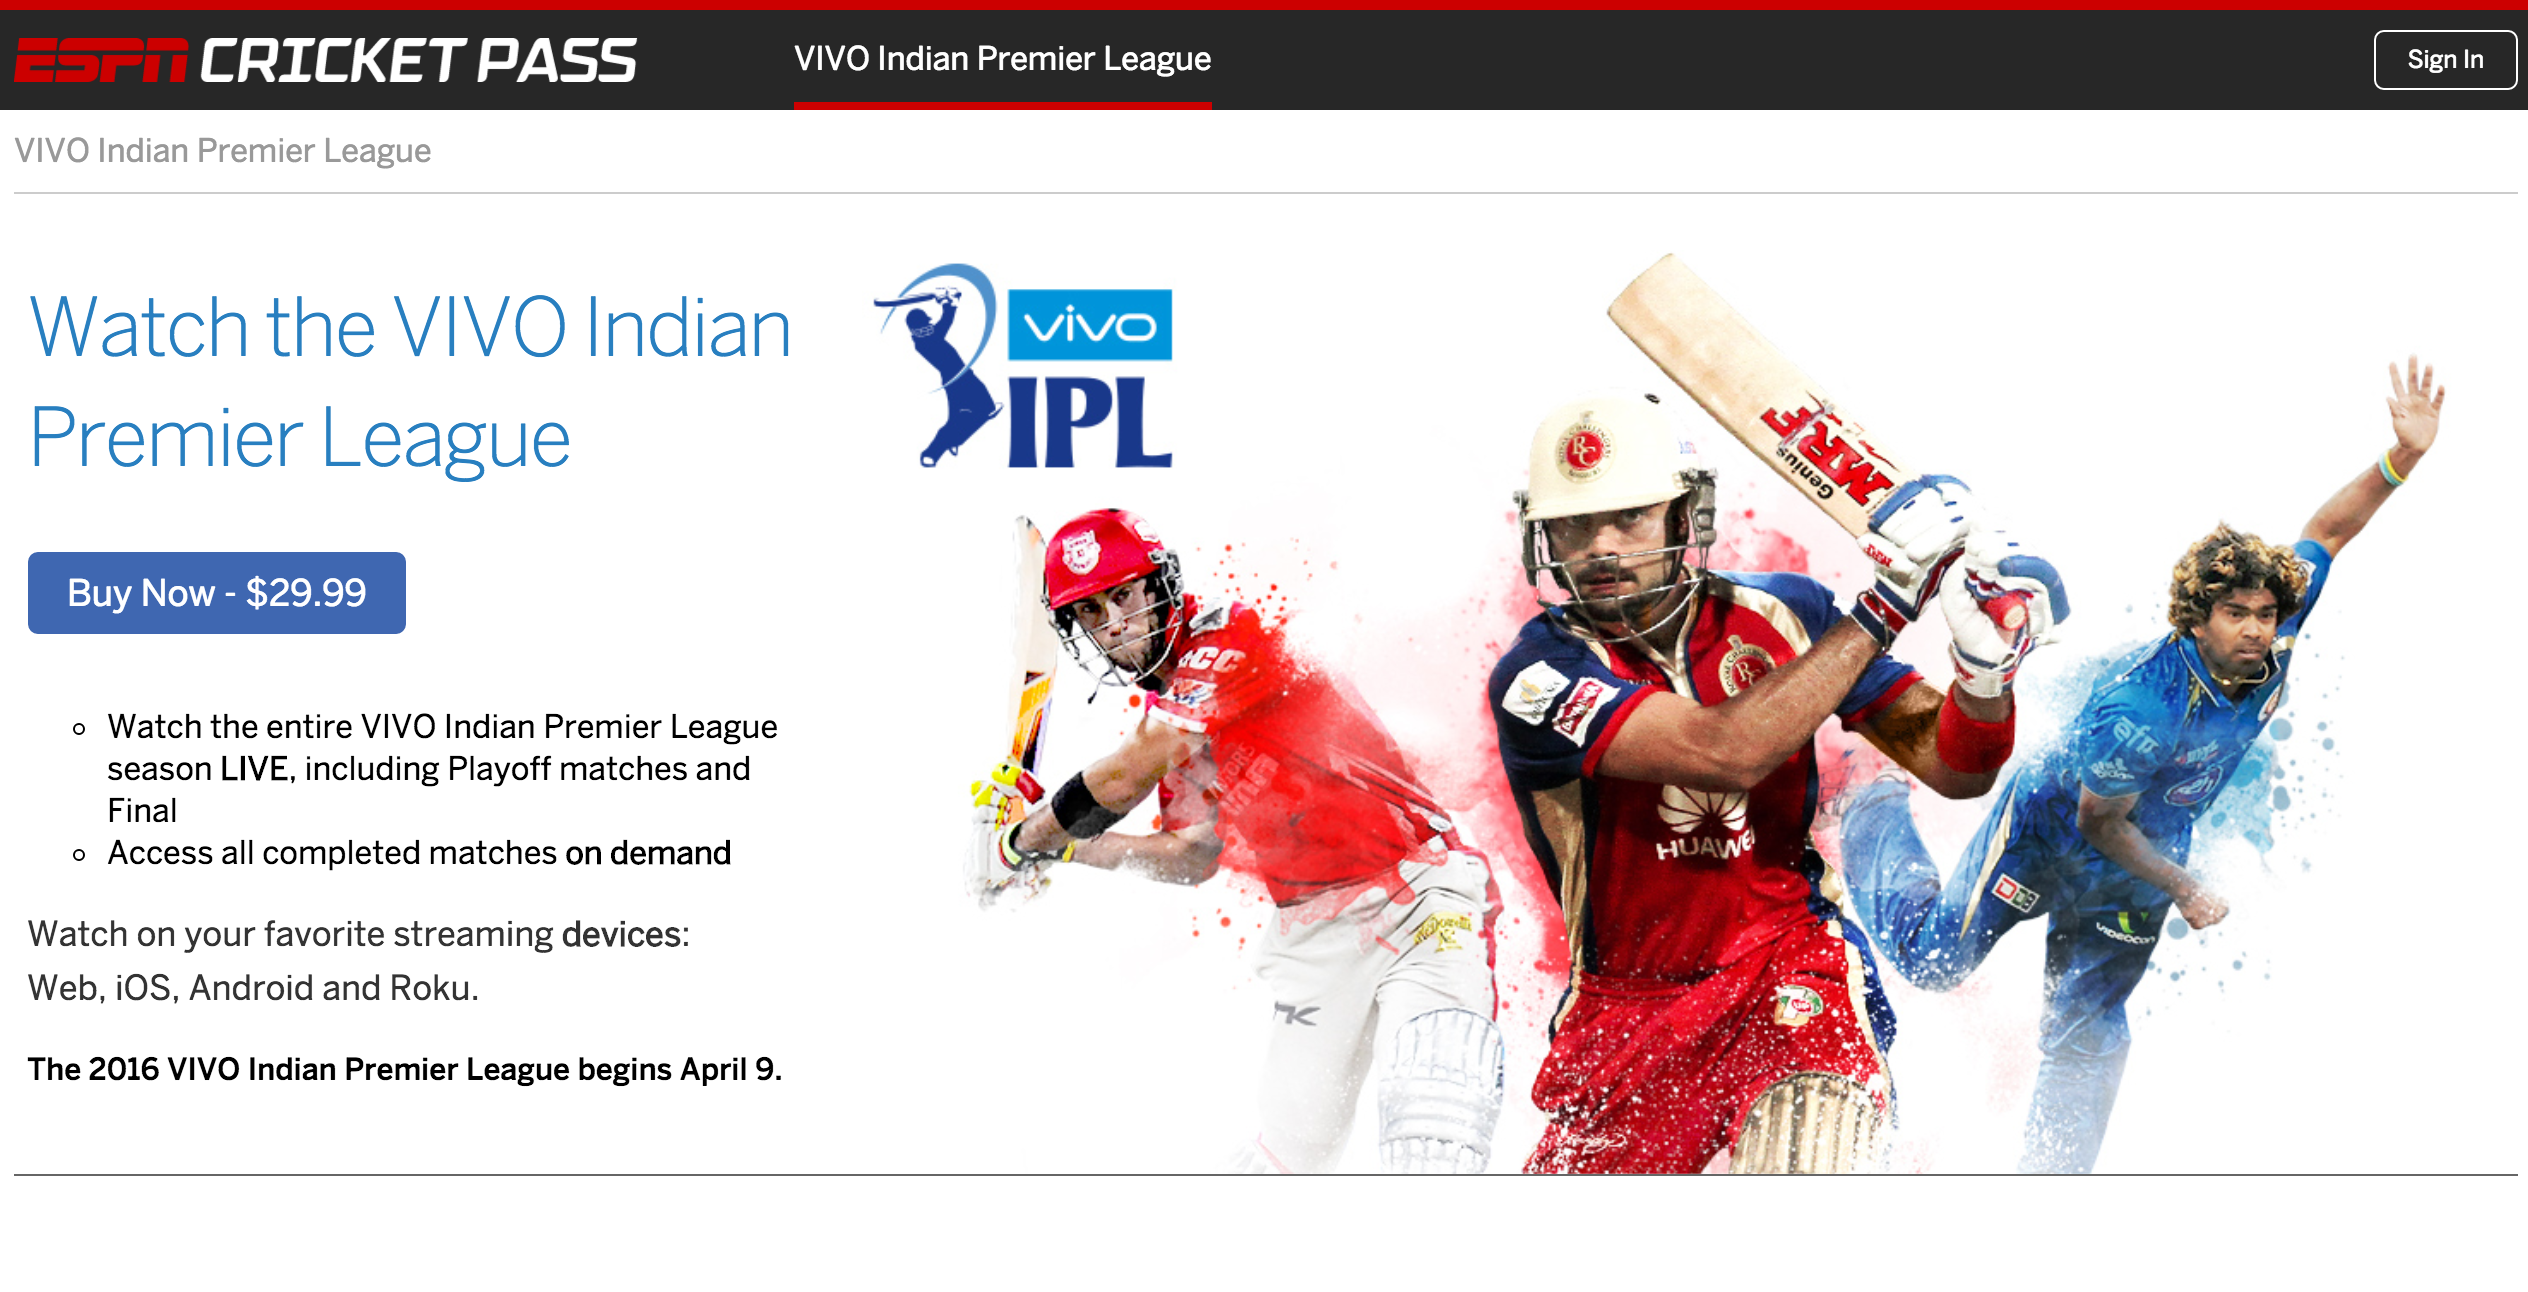 Cricket Fans Score With Espn Subscription Streaming Service